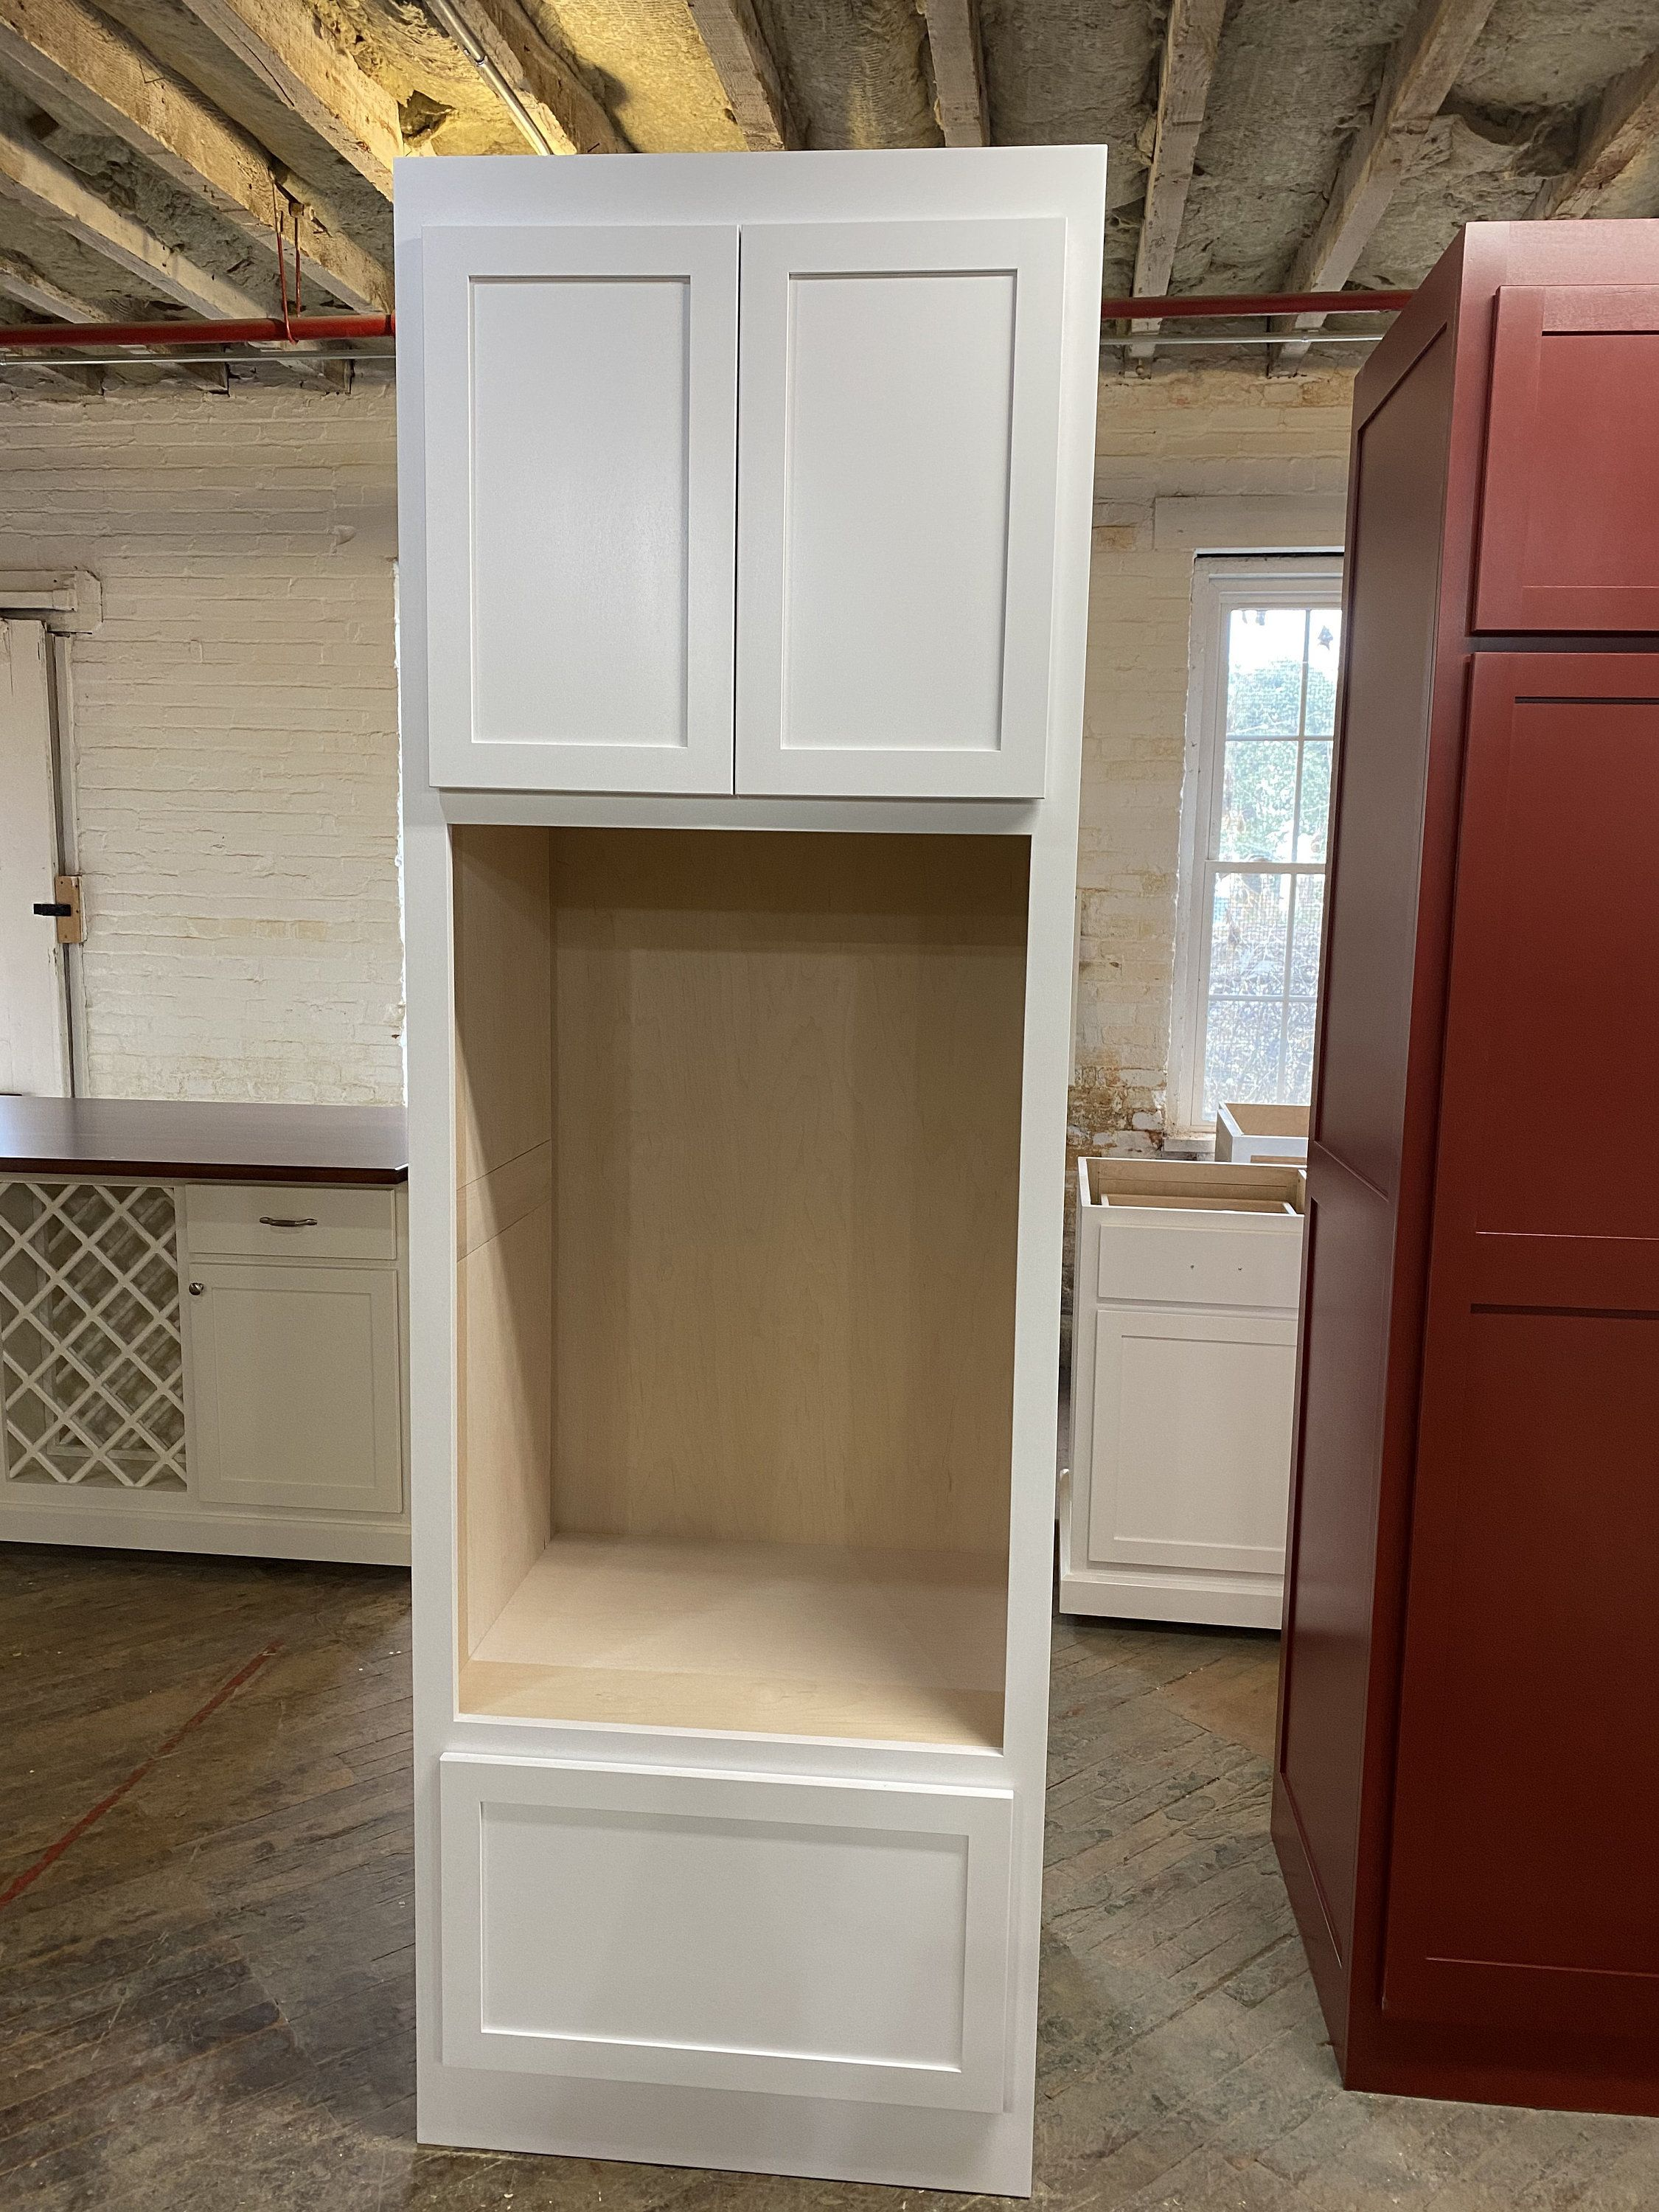 Item #E215 Wall Oven Cabinet, Pantry in 2020 | Oven ...